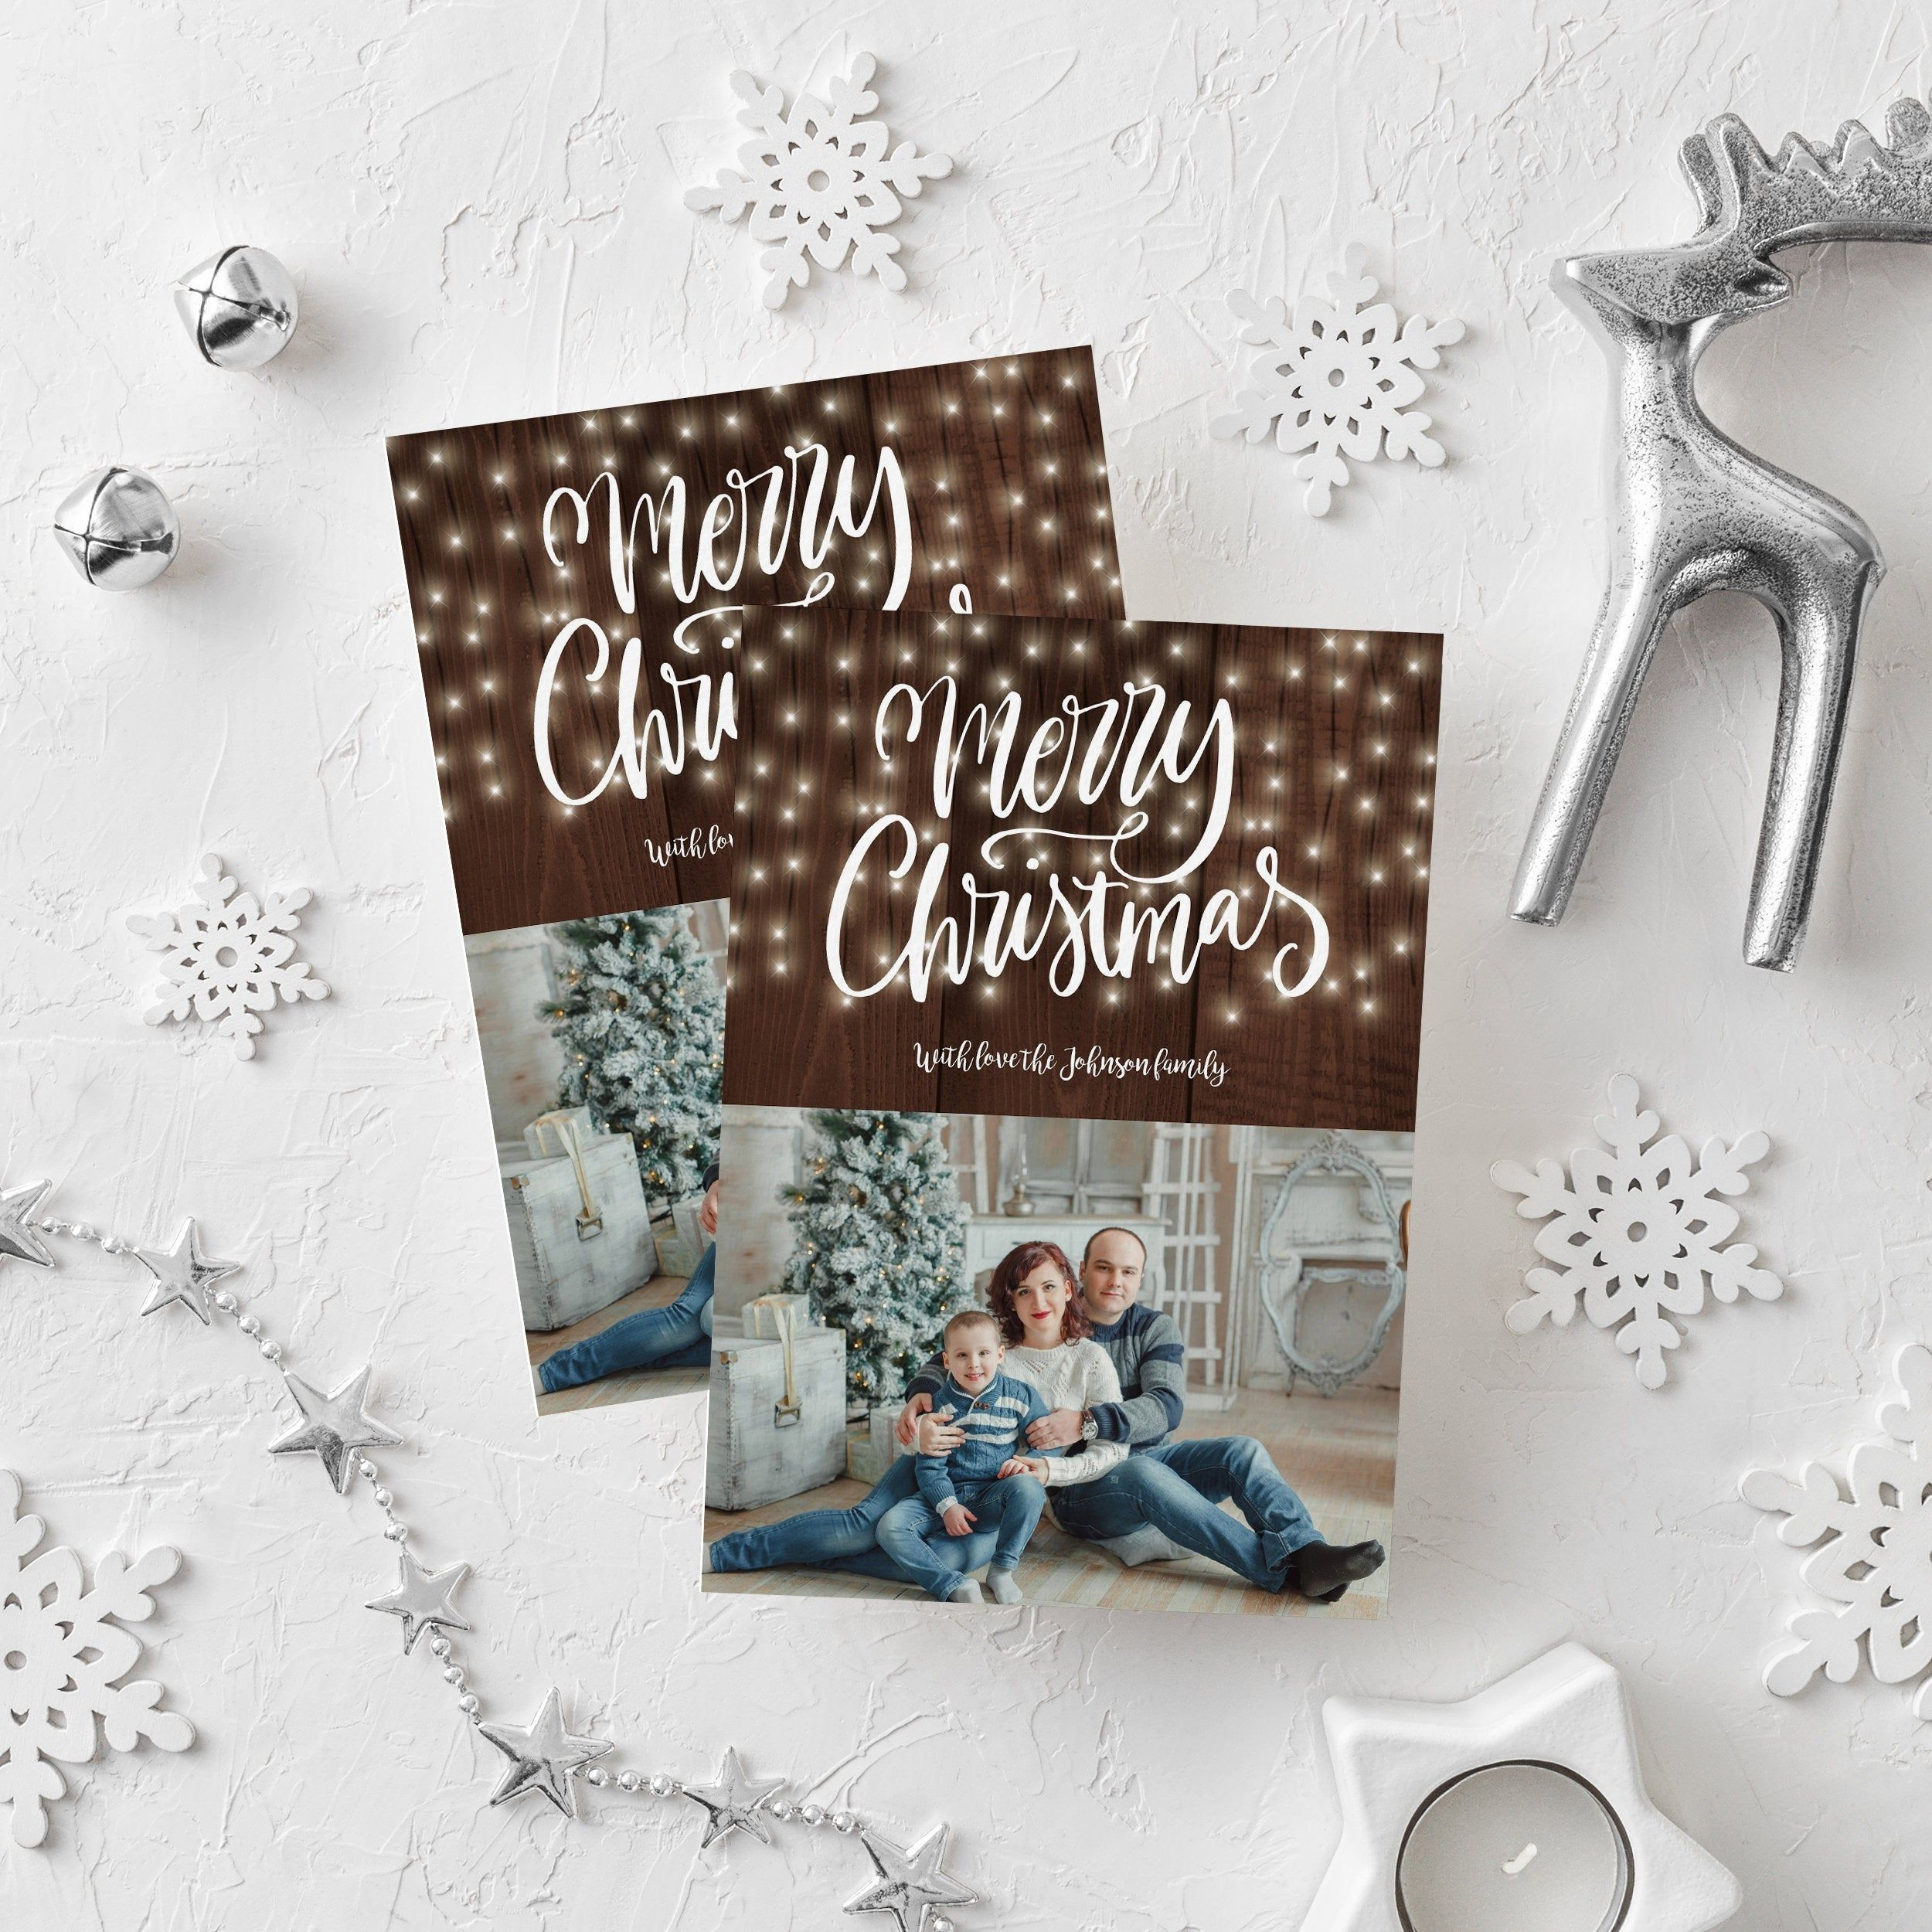 Christmas Photo Card Editable Template Merry Christmas Etsy Christmas Photo Cards Christmas Card Template Holiday Greeting Cards